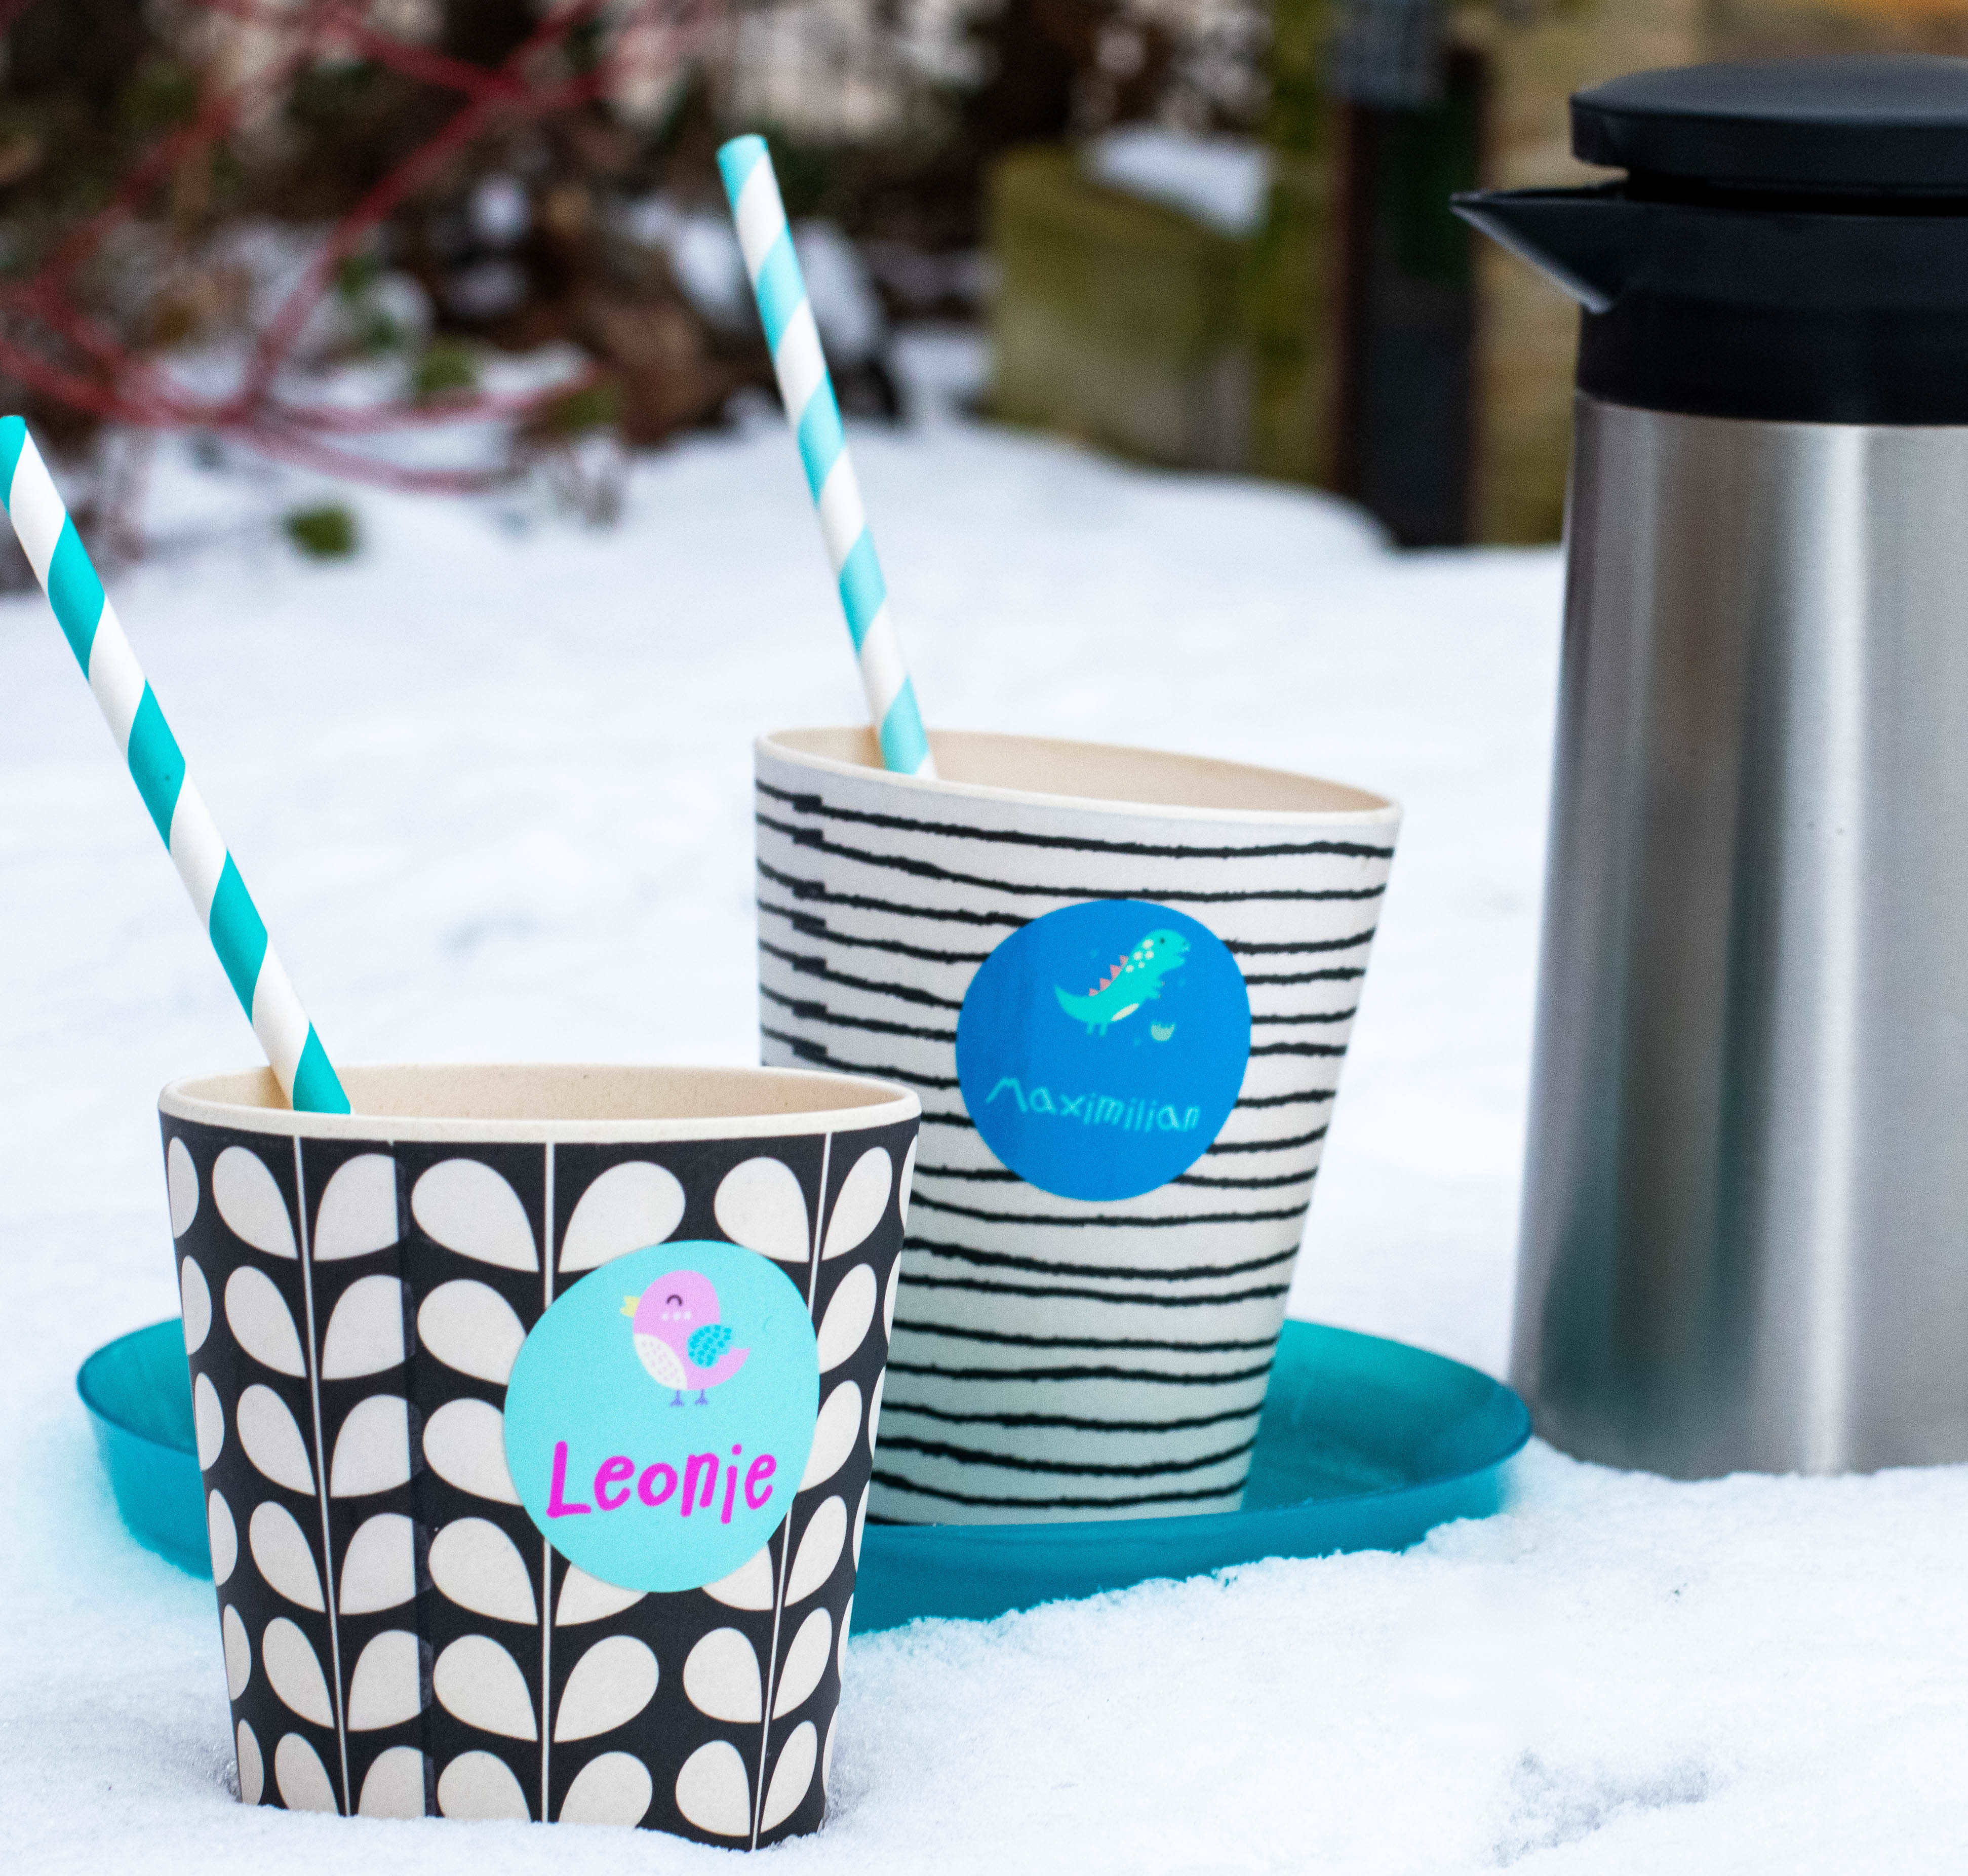 5 funny outdoor ideas during winter